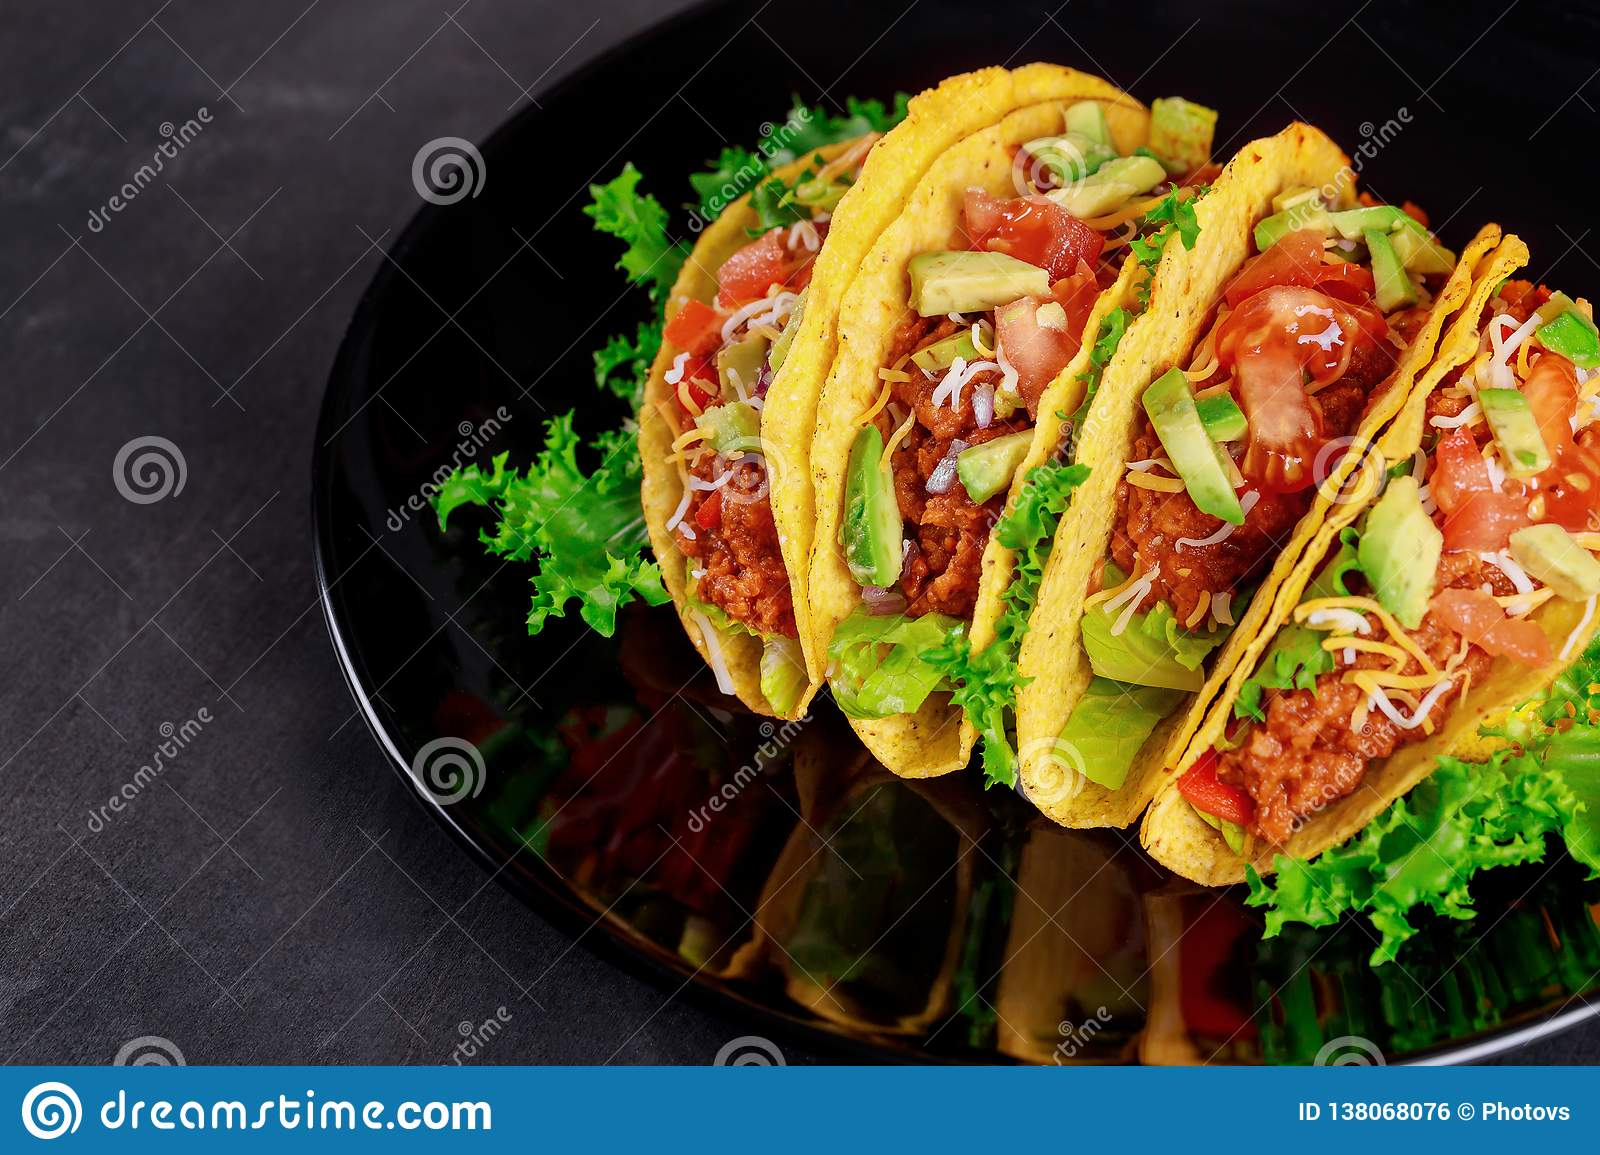 Fresh vegetables on a delicious tacos on black plate on wooden background